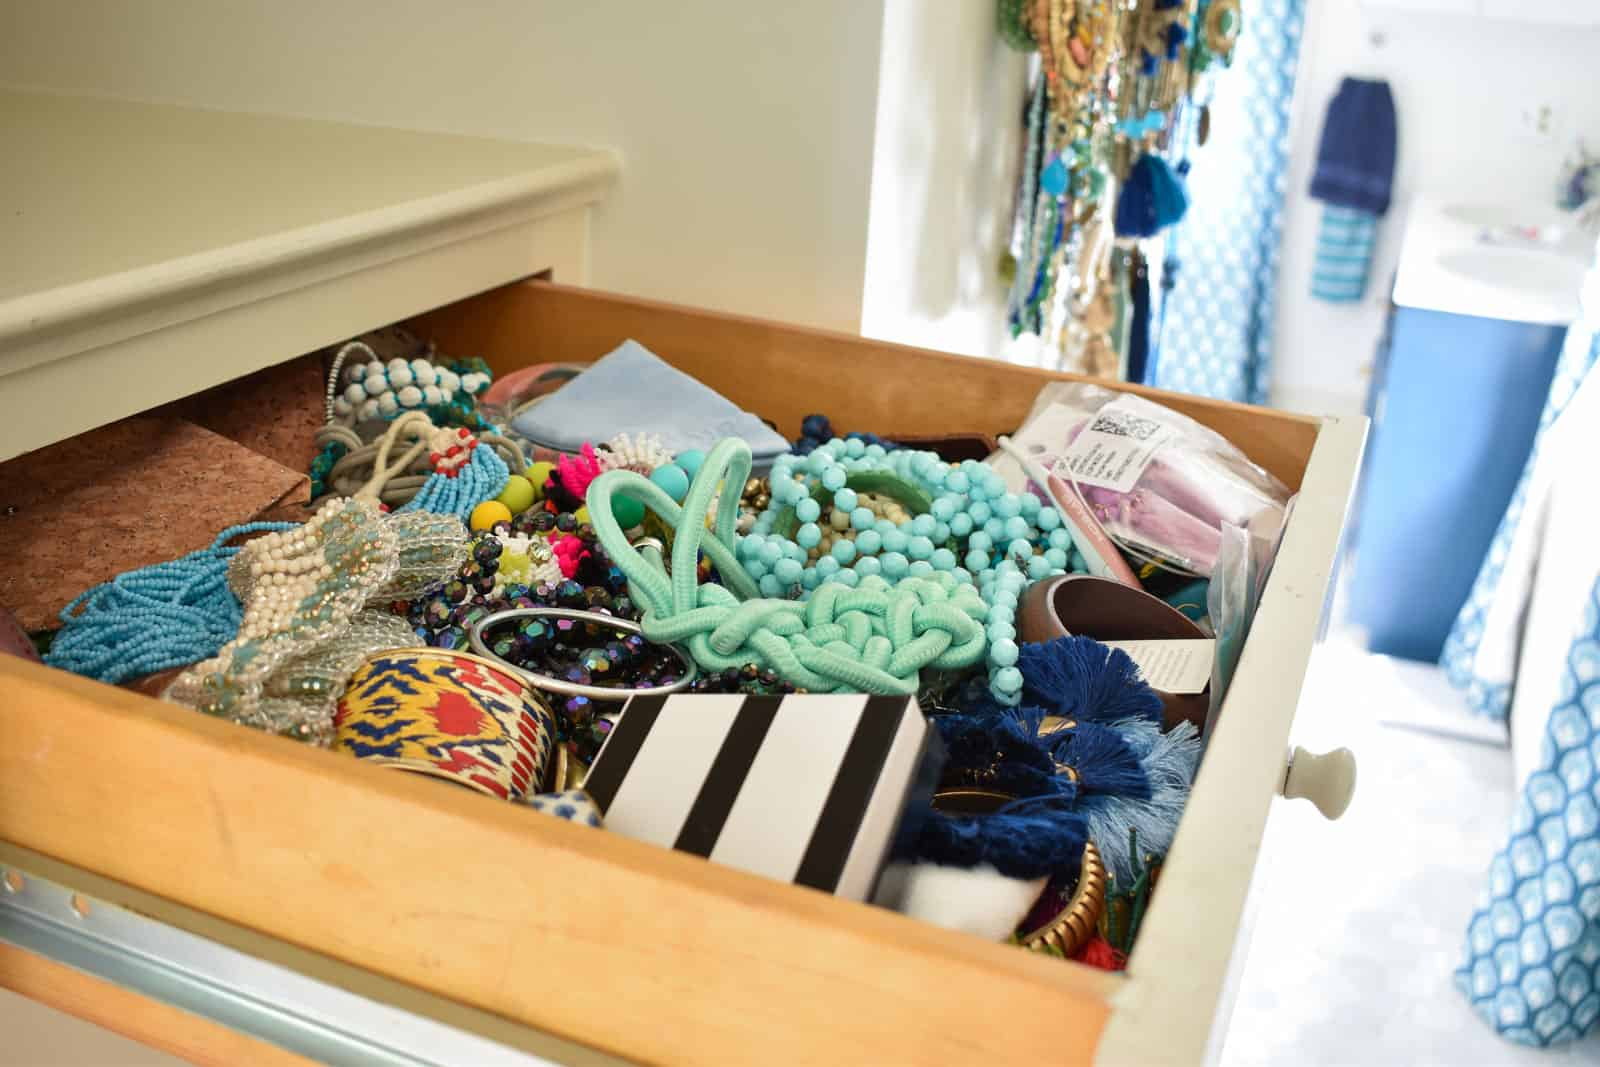 top drawer overflowing with jewelry